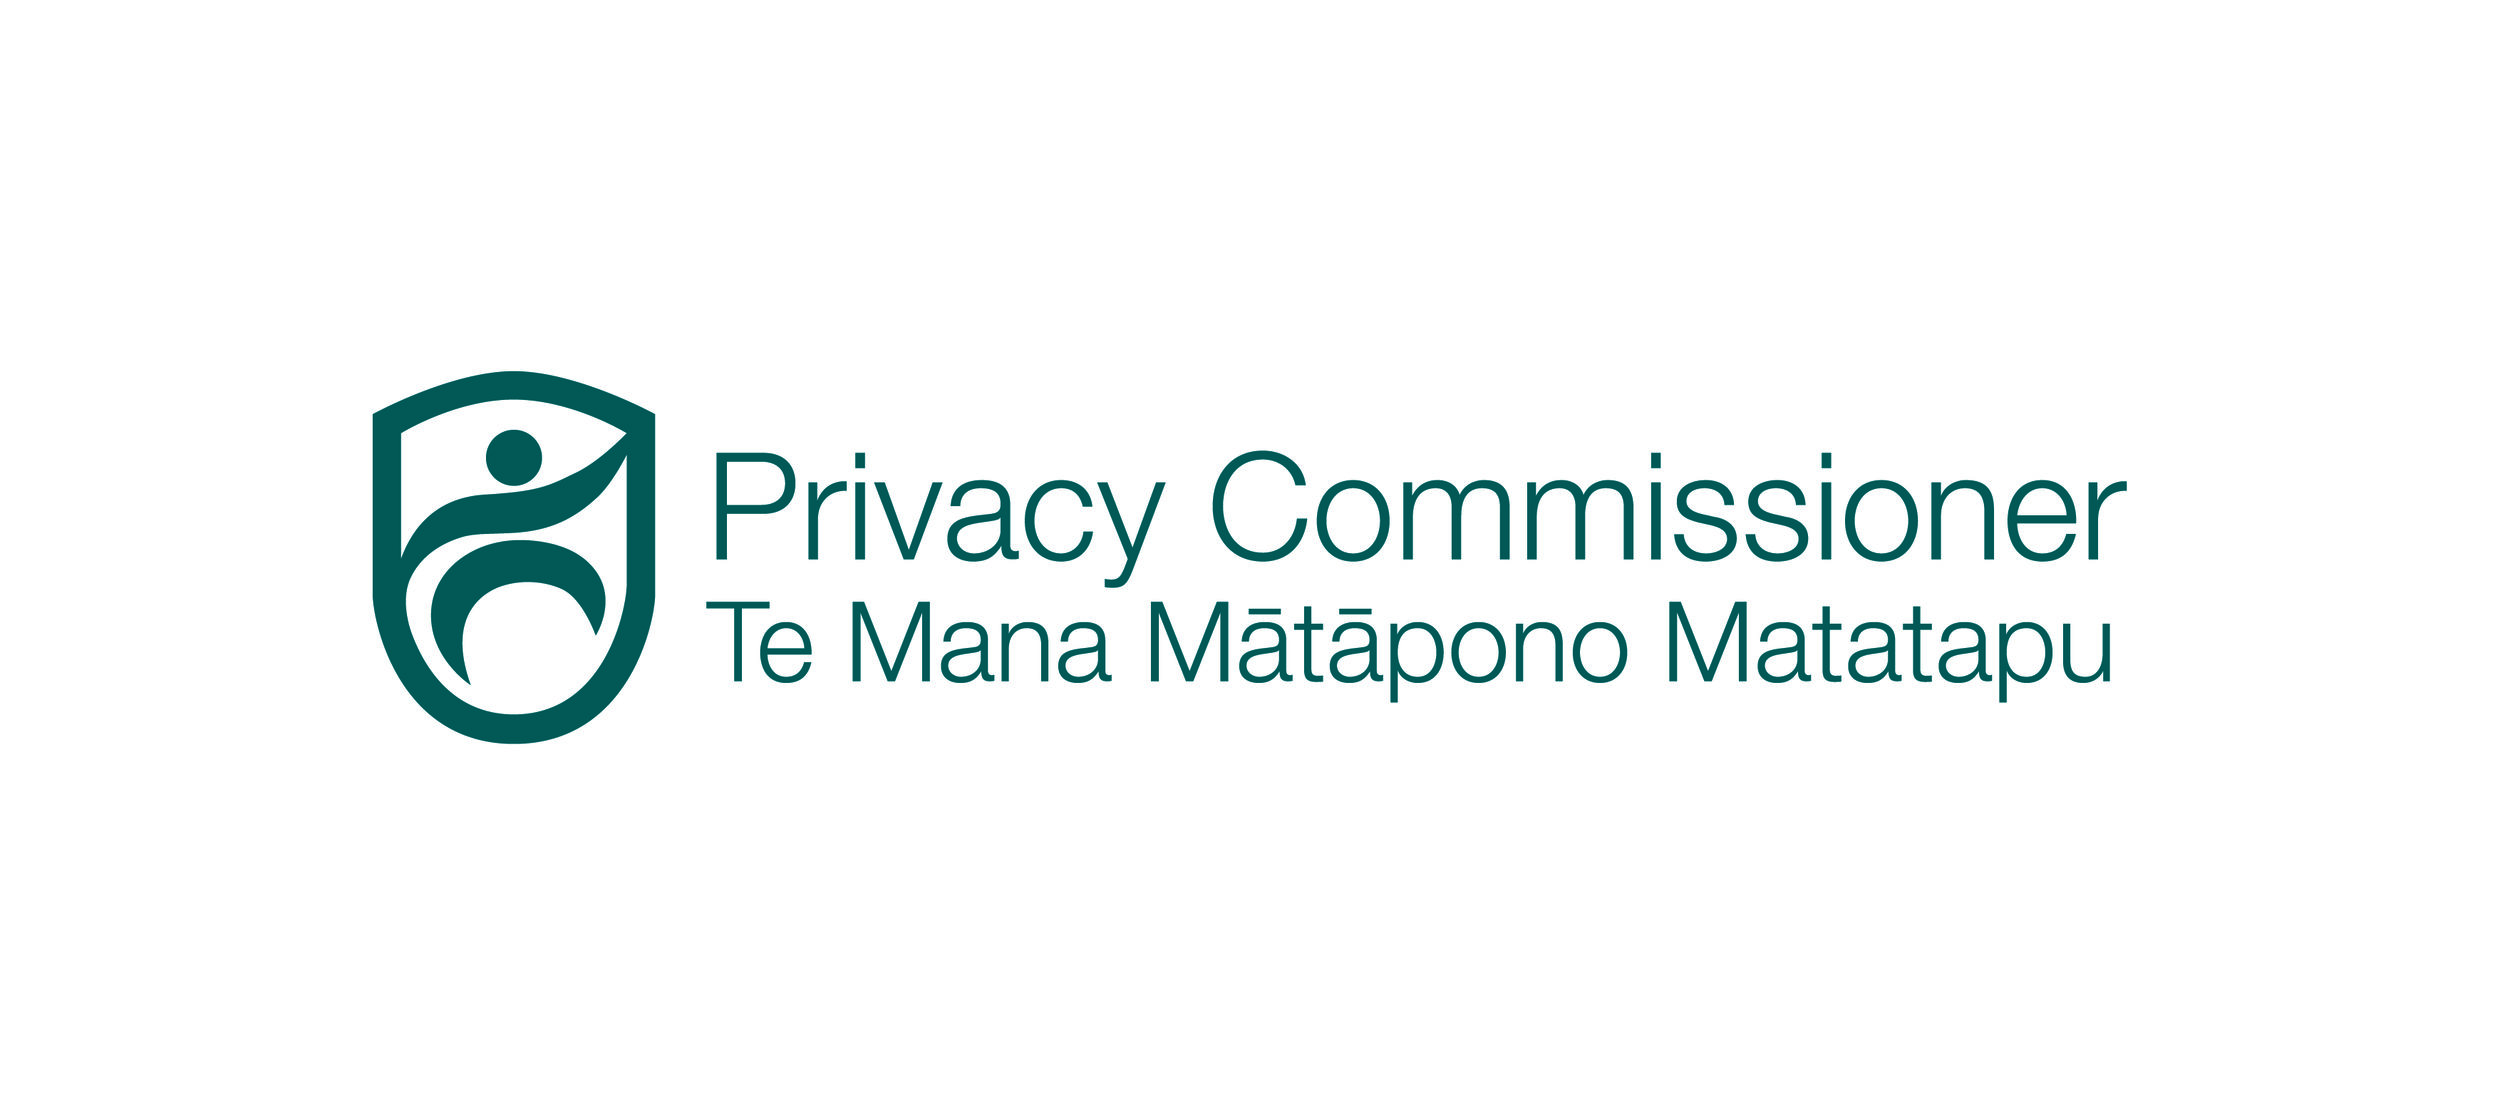 Privacy Commissioner Logo Macrons_Large_CMYK (A571674).jpg